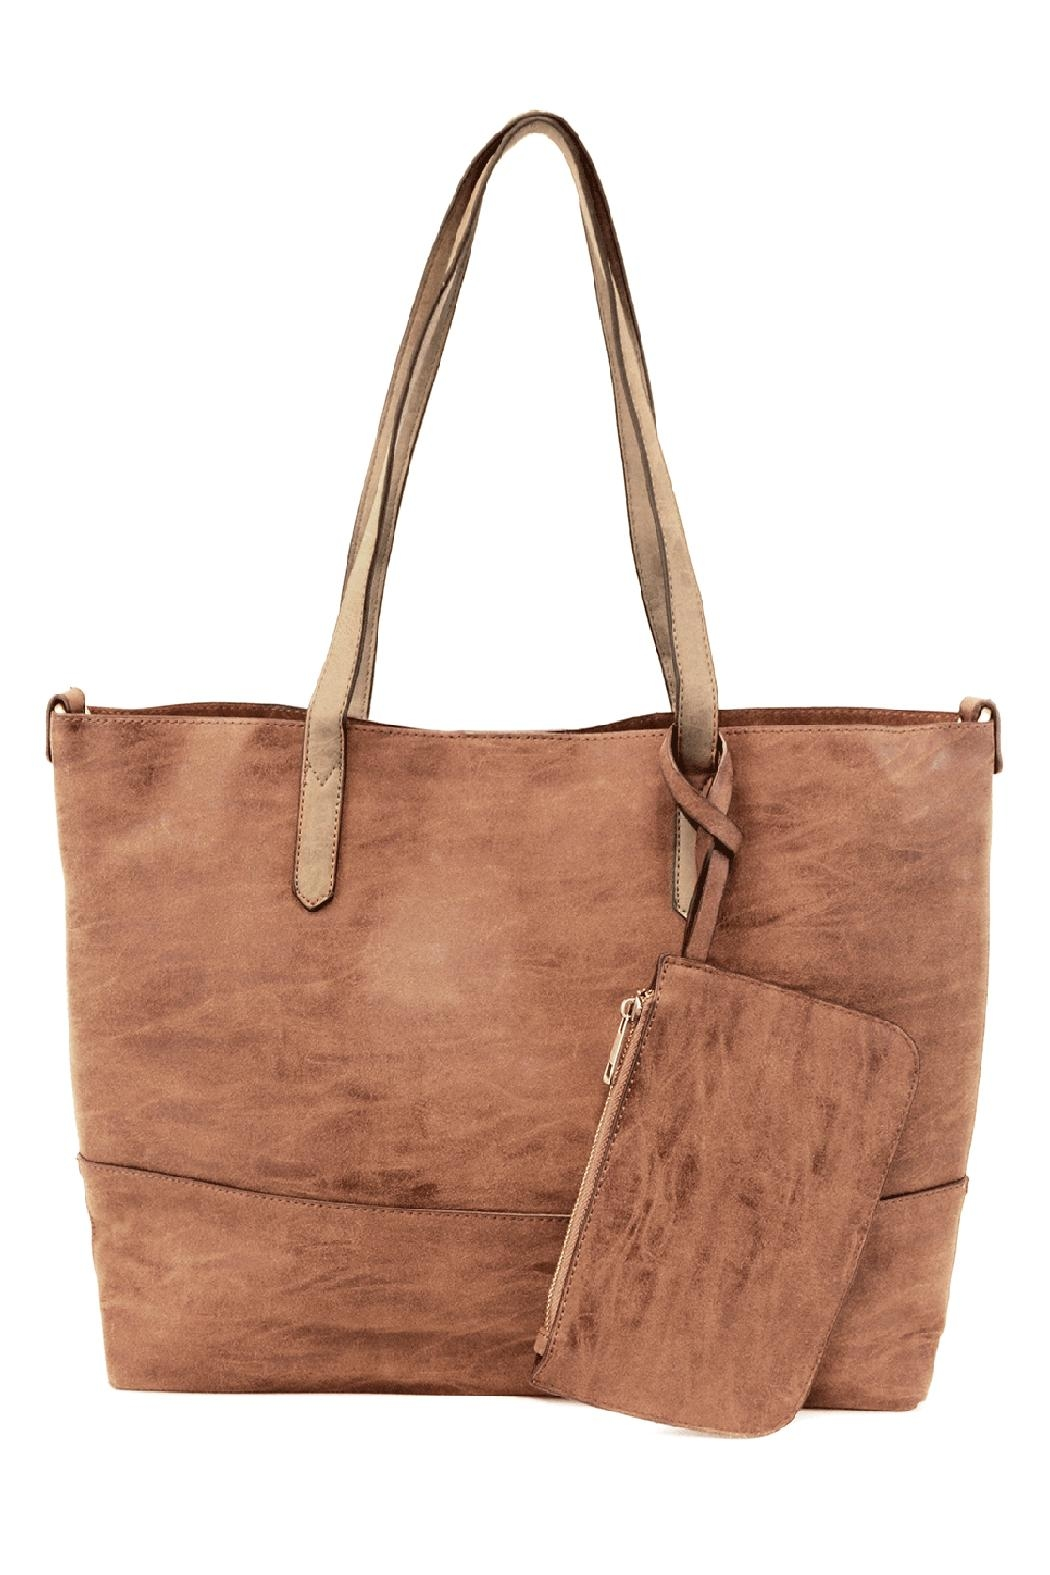 Joy Susan Accessories Brushed 2in1 Tote - Front Cropped Image